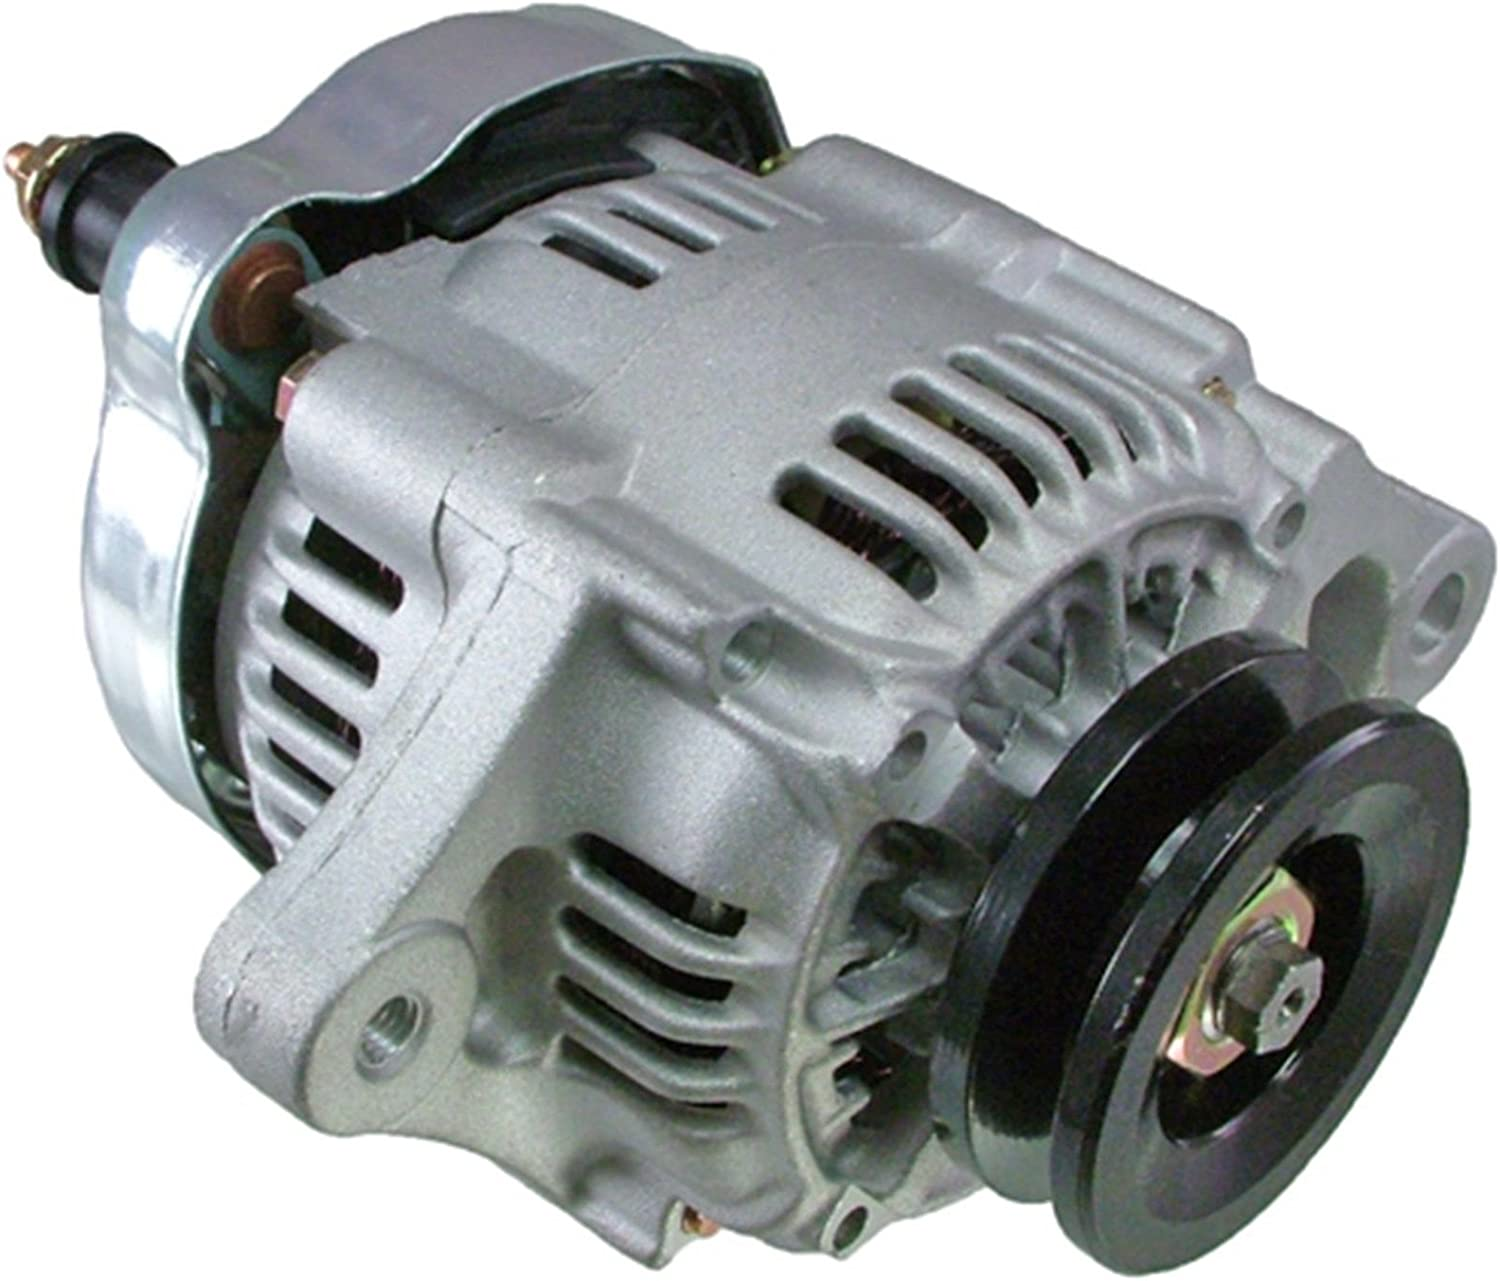 Alternator Denso Style new Kubota G2160 R310 TG1860 G2460 Case 1825B 1838 12190